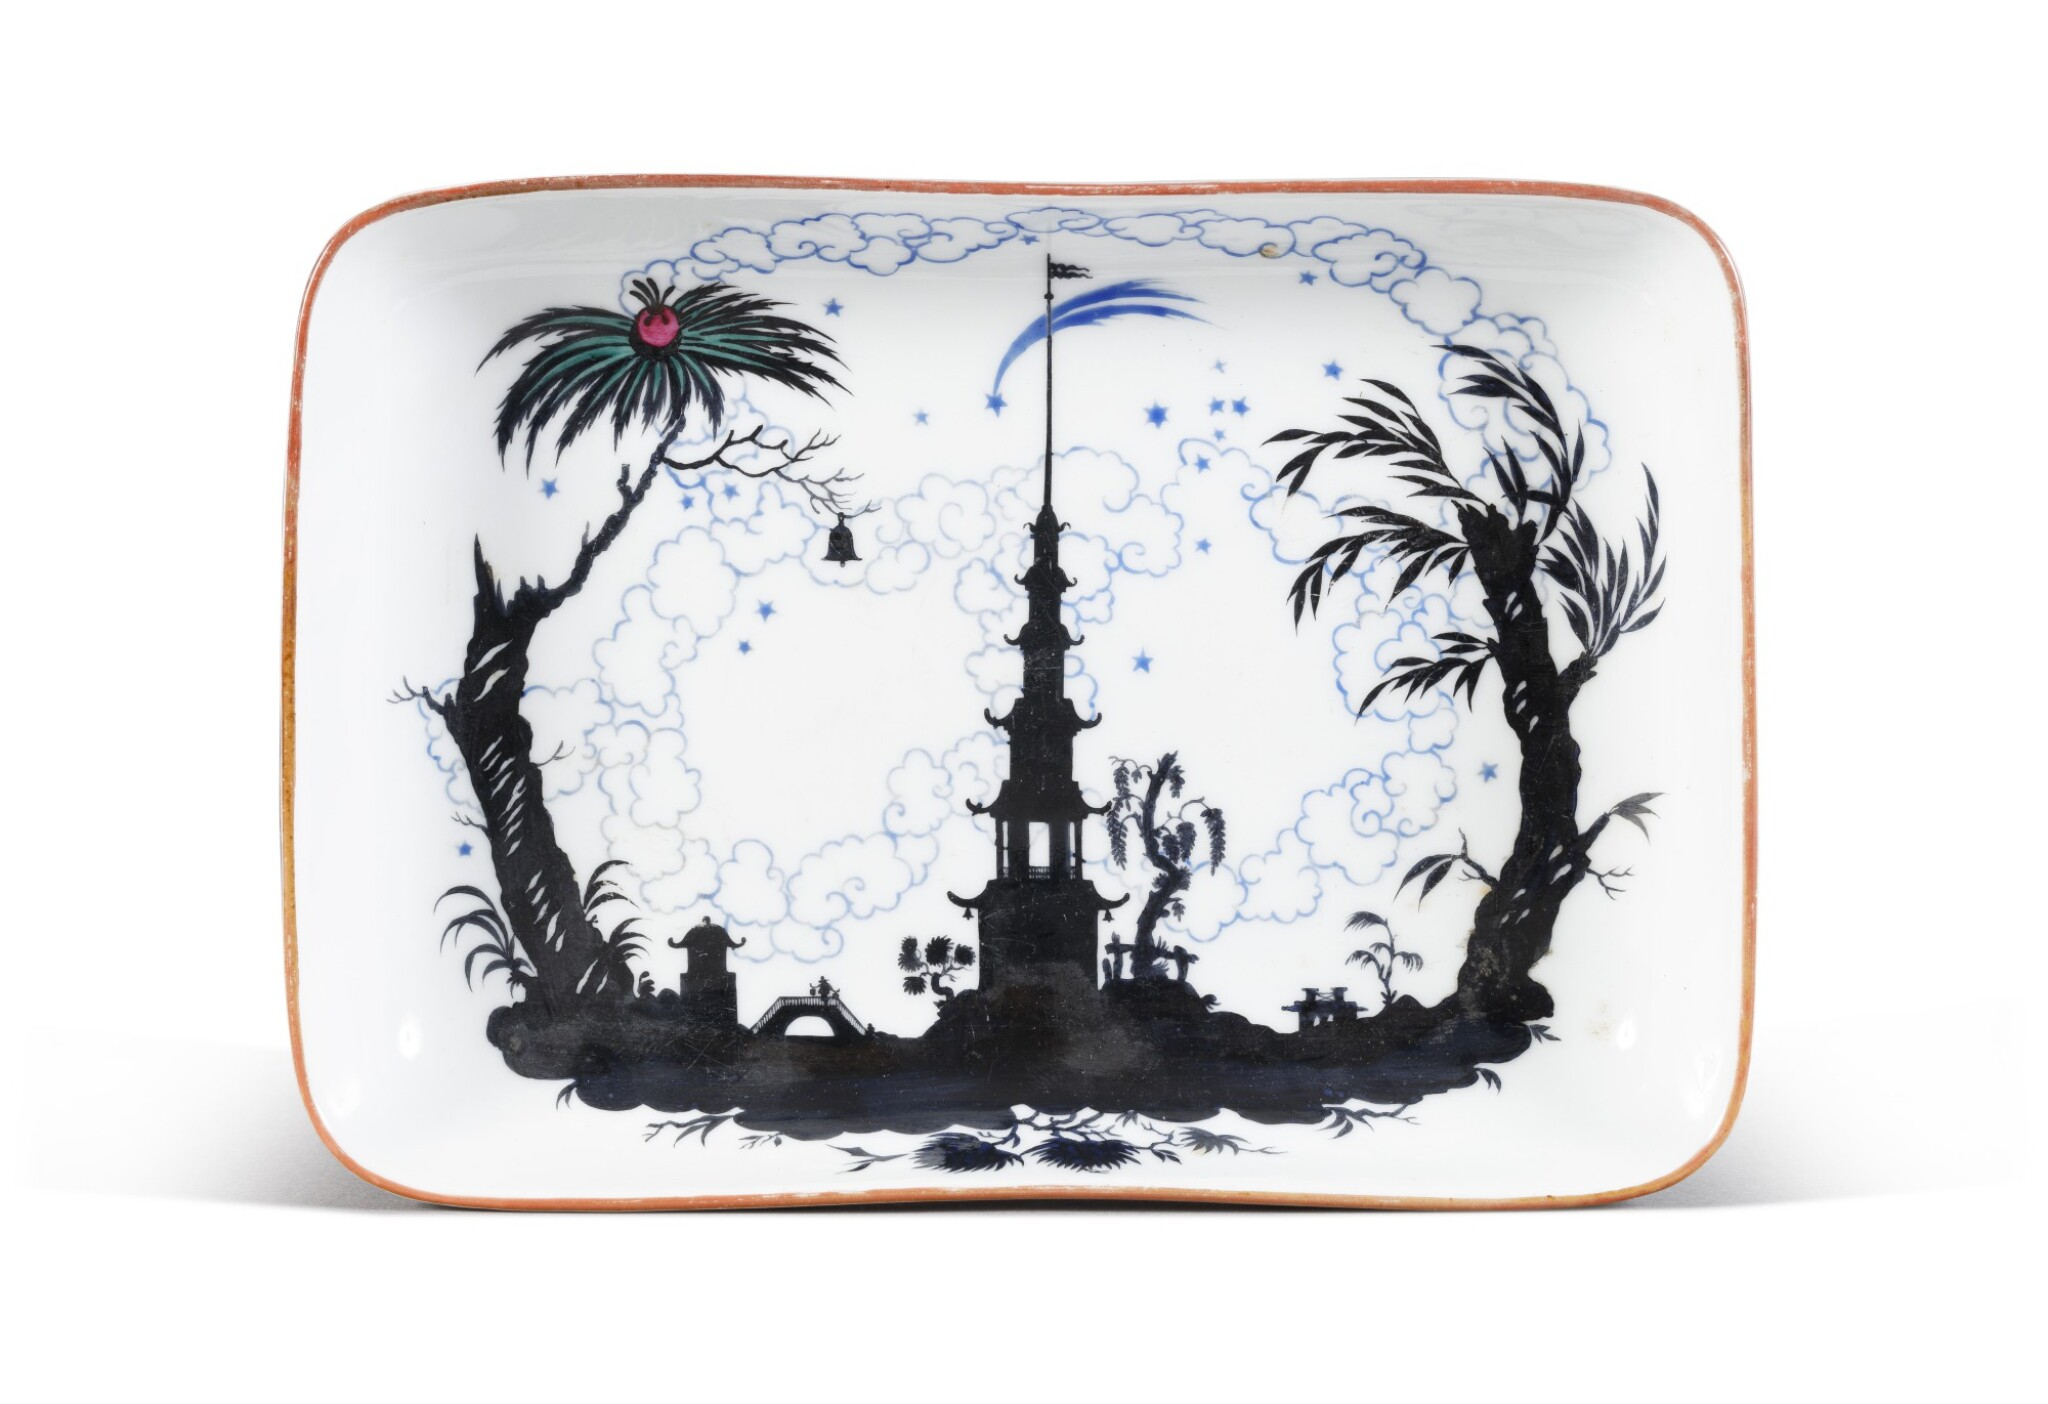 View full screen - View 1 of Lot 151. The Nightingale: a rare Soviet porcelain platter, State Porcelain Factory, Petrograd, 1922.